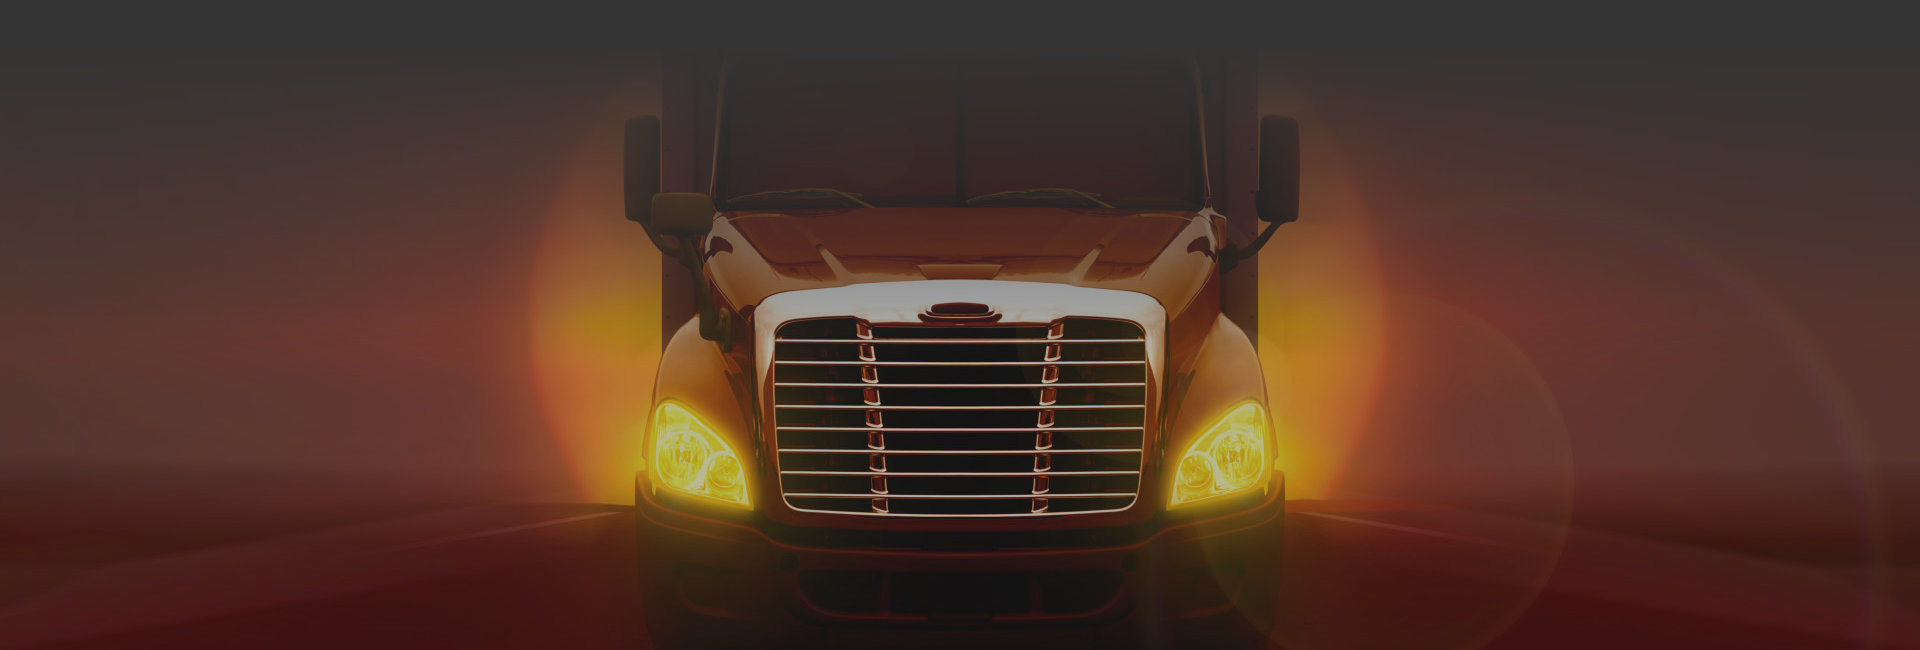 front view of a truck